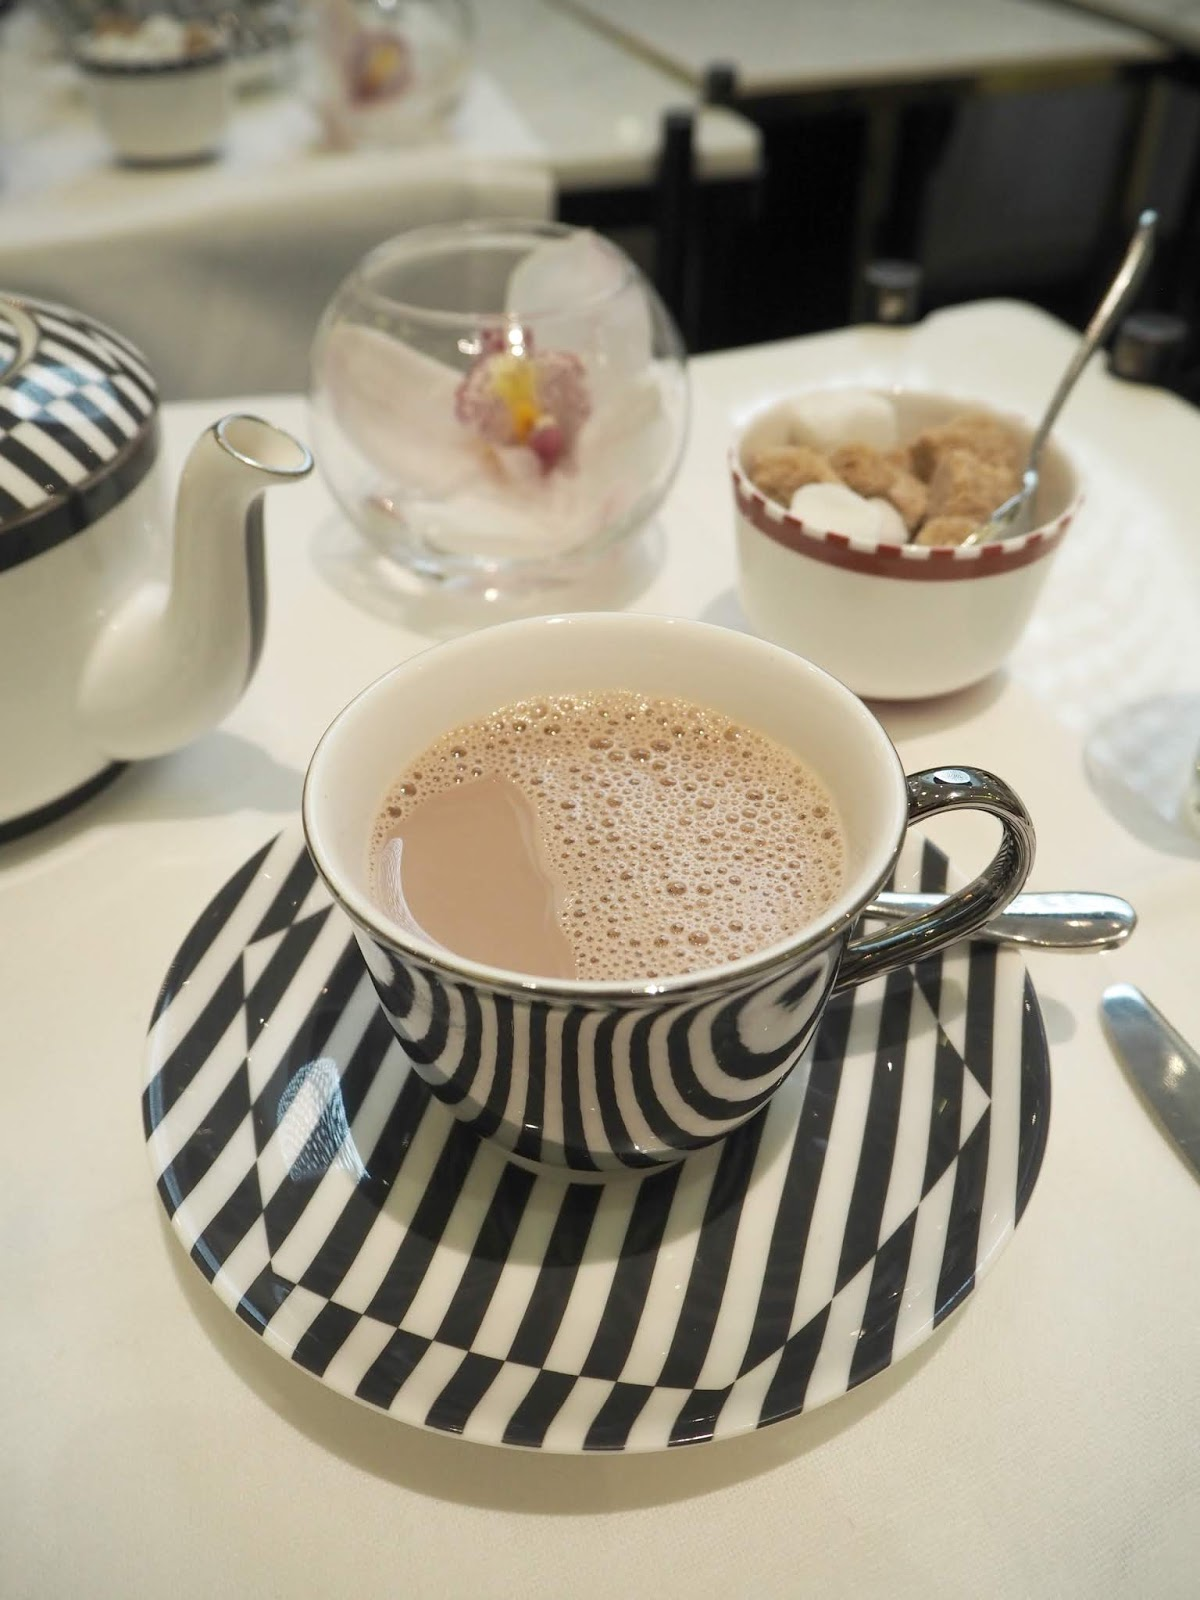 Hot Chocolate served at The Corinthia London